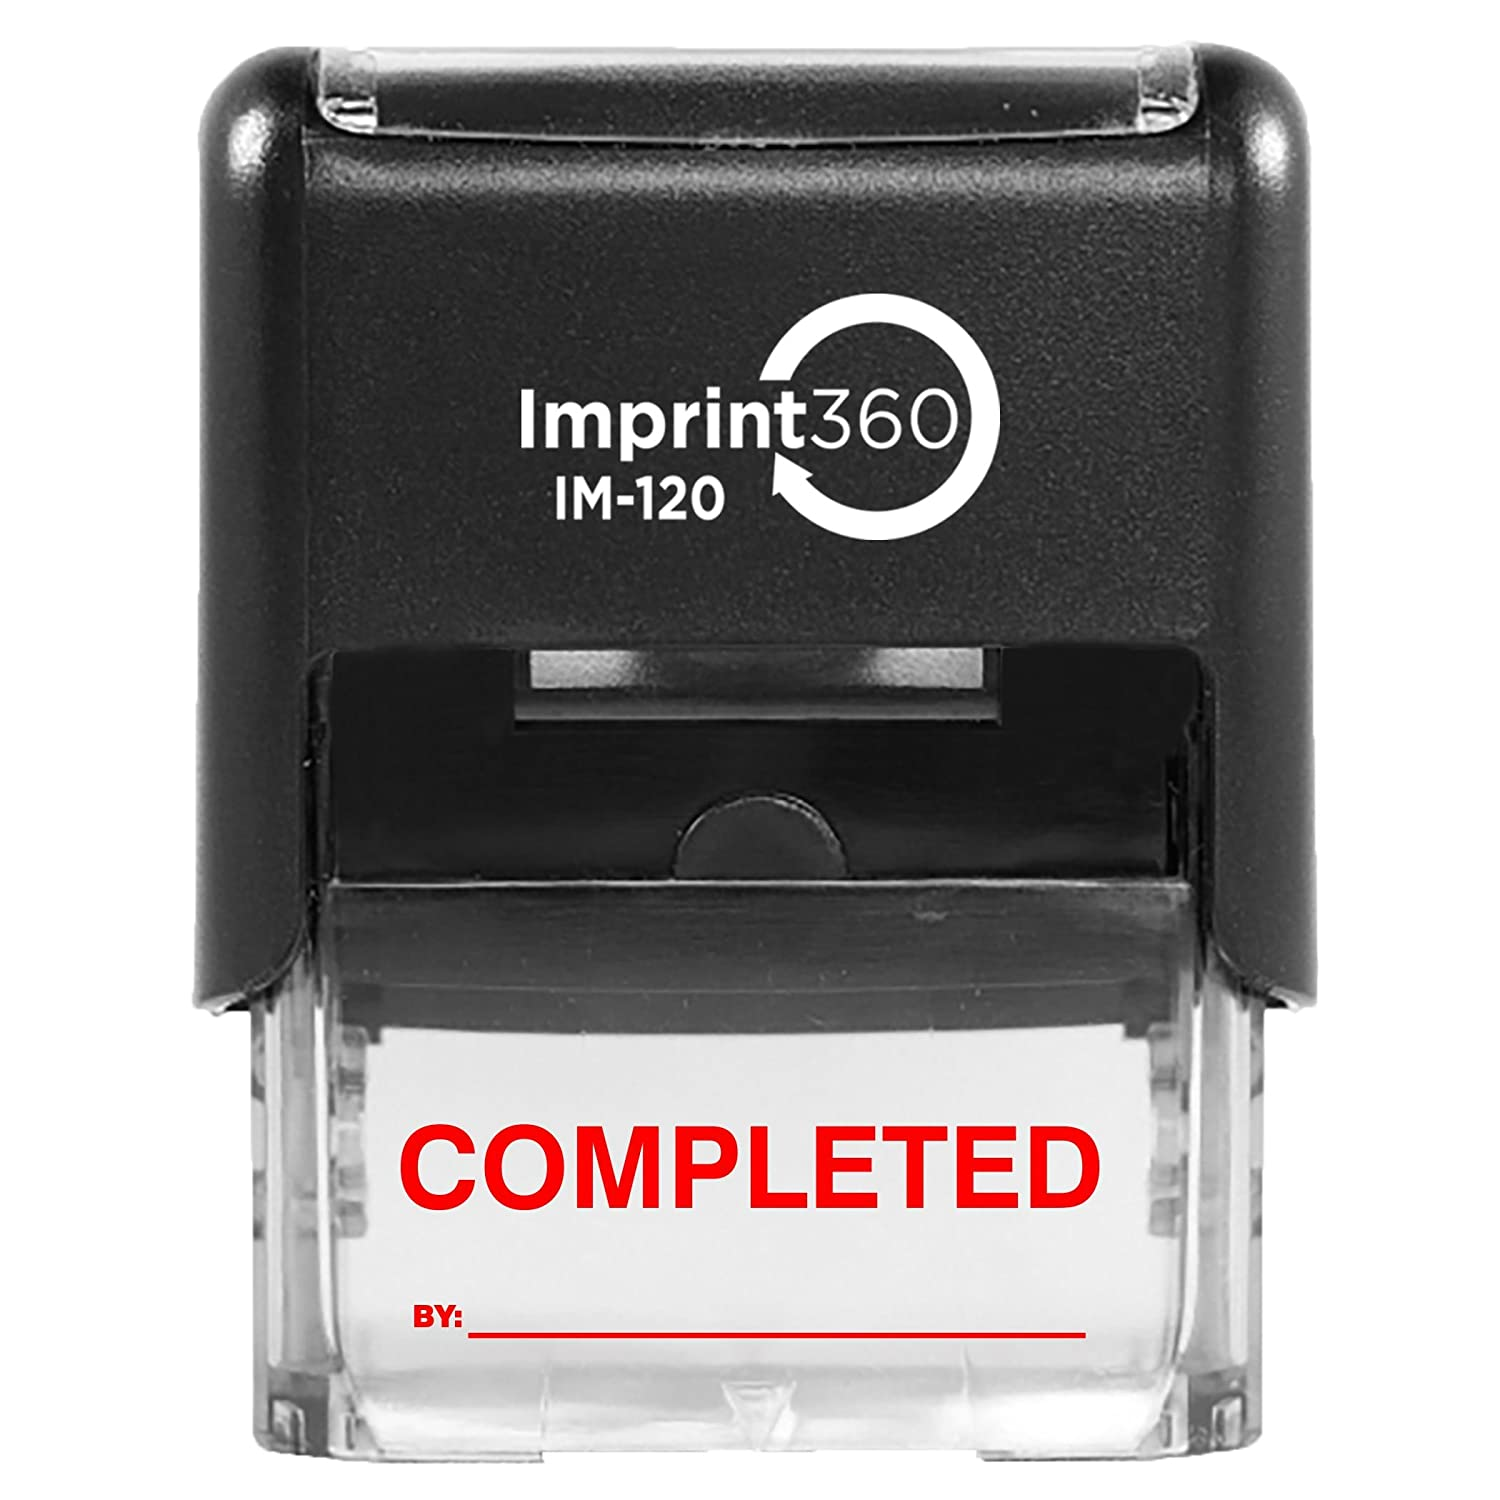 Supply360 AS-IMP1120R - Completed Stamp with by: Line, Red Ink, Heavy Duty Commerical Self-Inking Rubber Stamp, 9/16